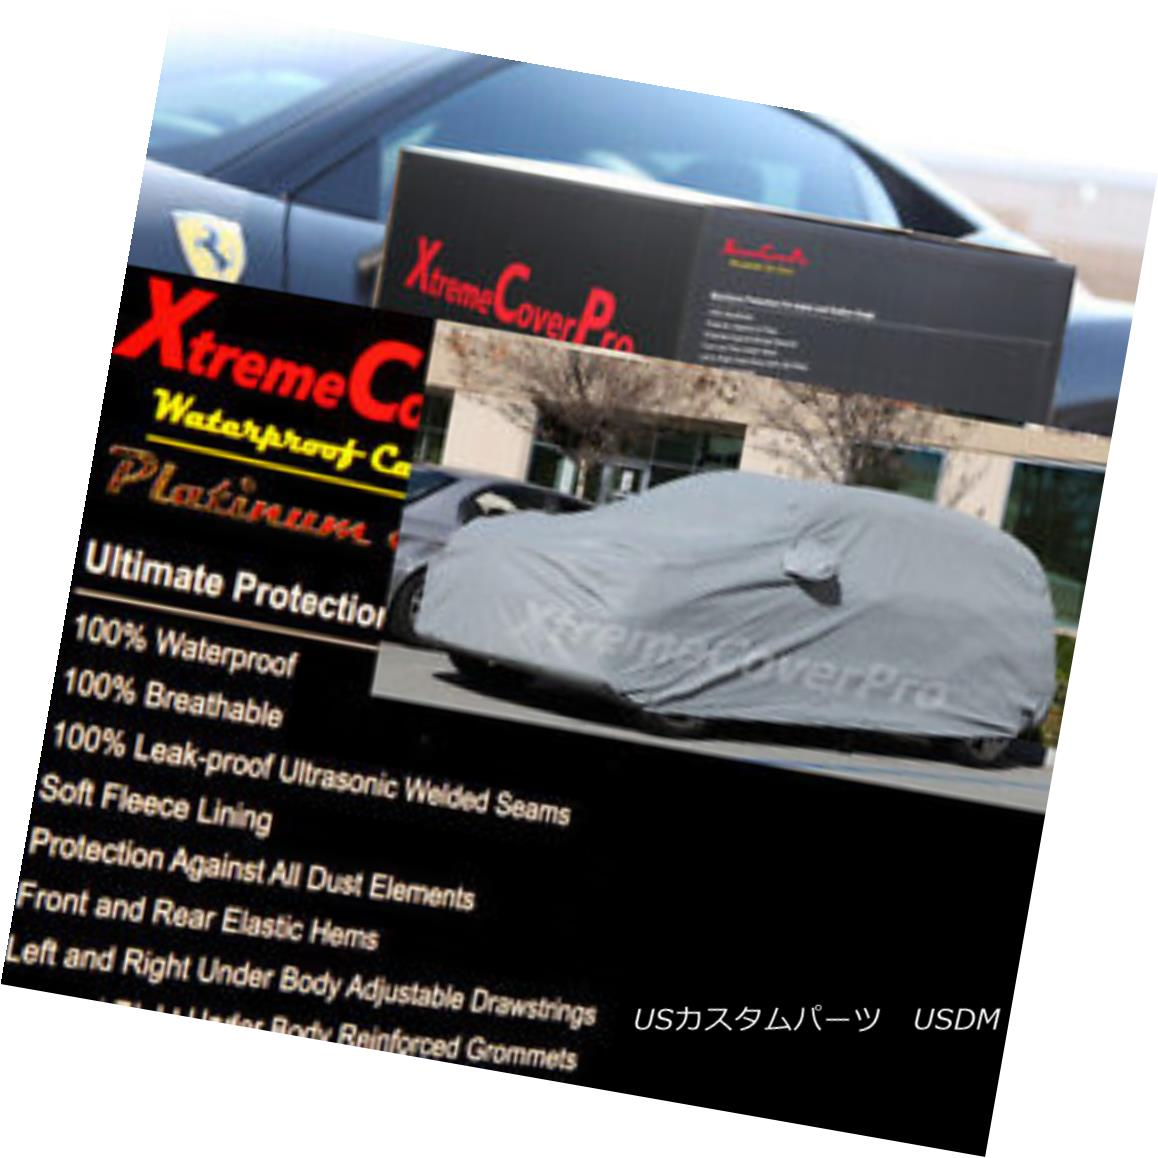 カーカバー 2015 CADILLAC ESCLADE ESV Waterproof Car Cover w/Mirror Pockets - Gray 2015 CADILLAC ESCALADE ESV防水カーカバー付き/ミラーポケット - グレー